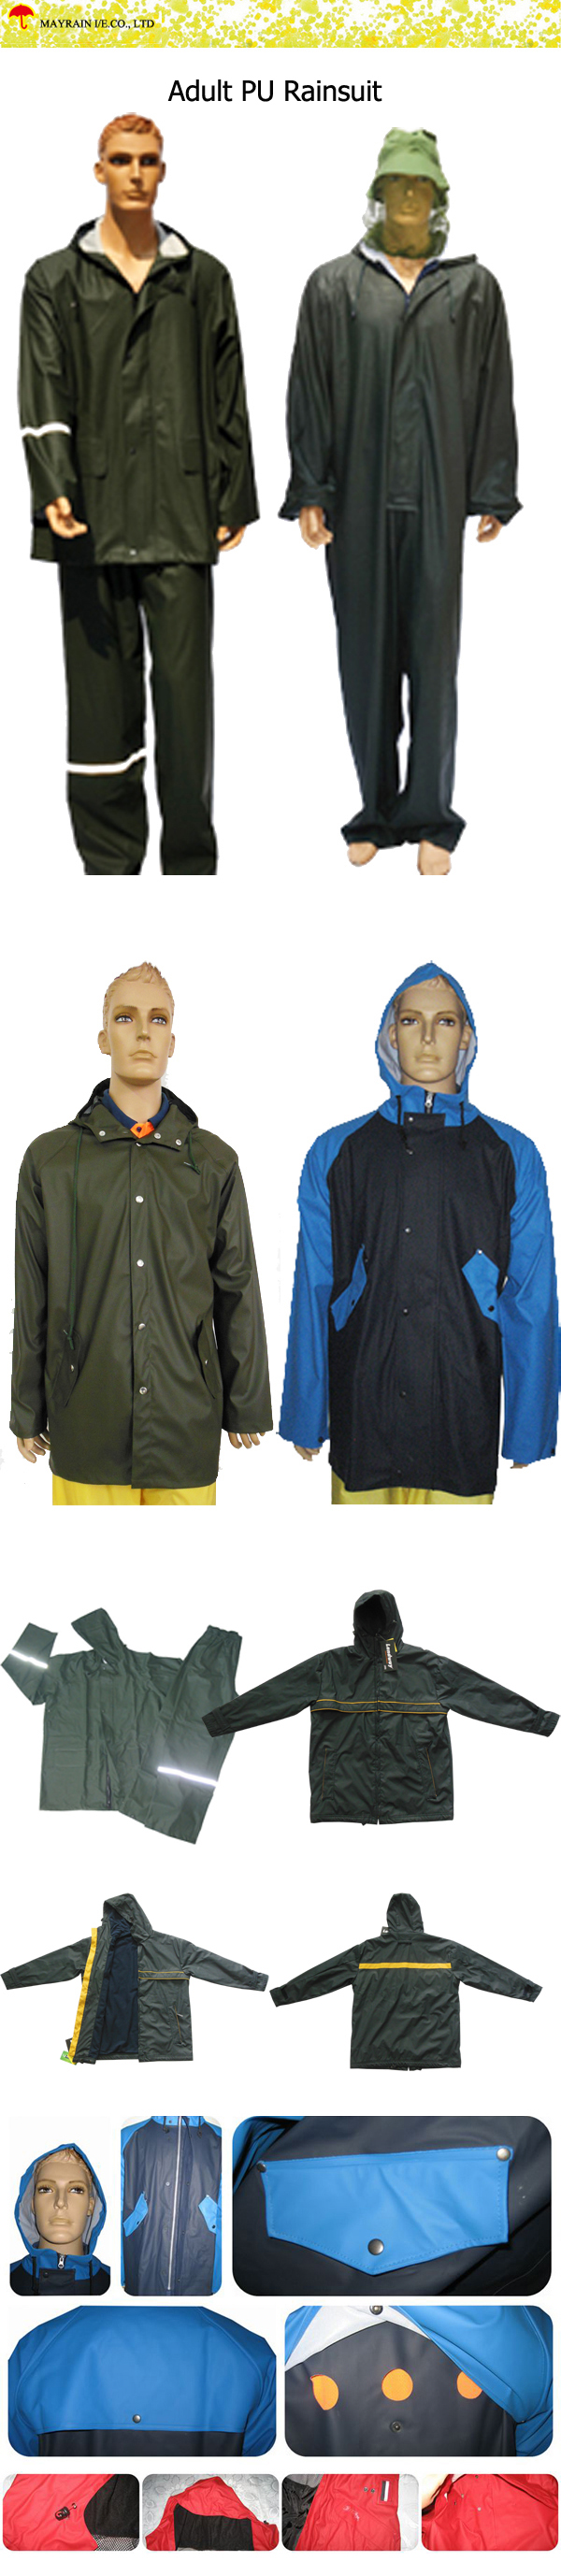 Adult PU Rainsuit